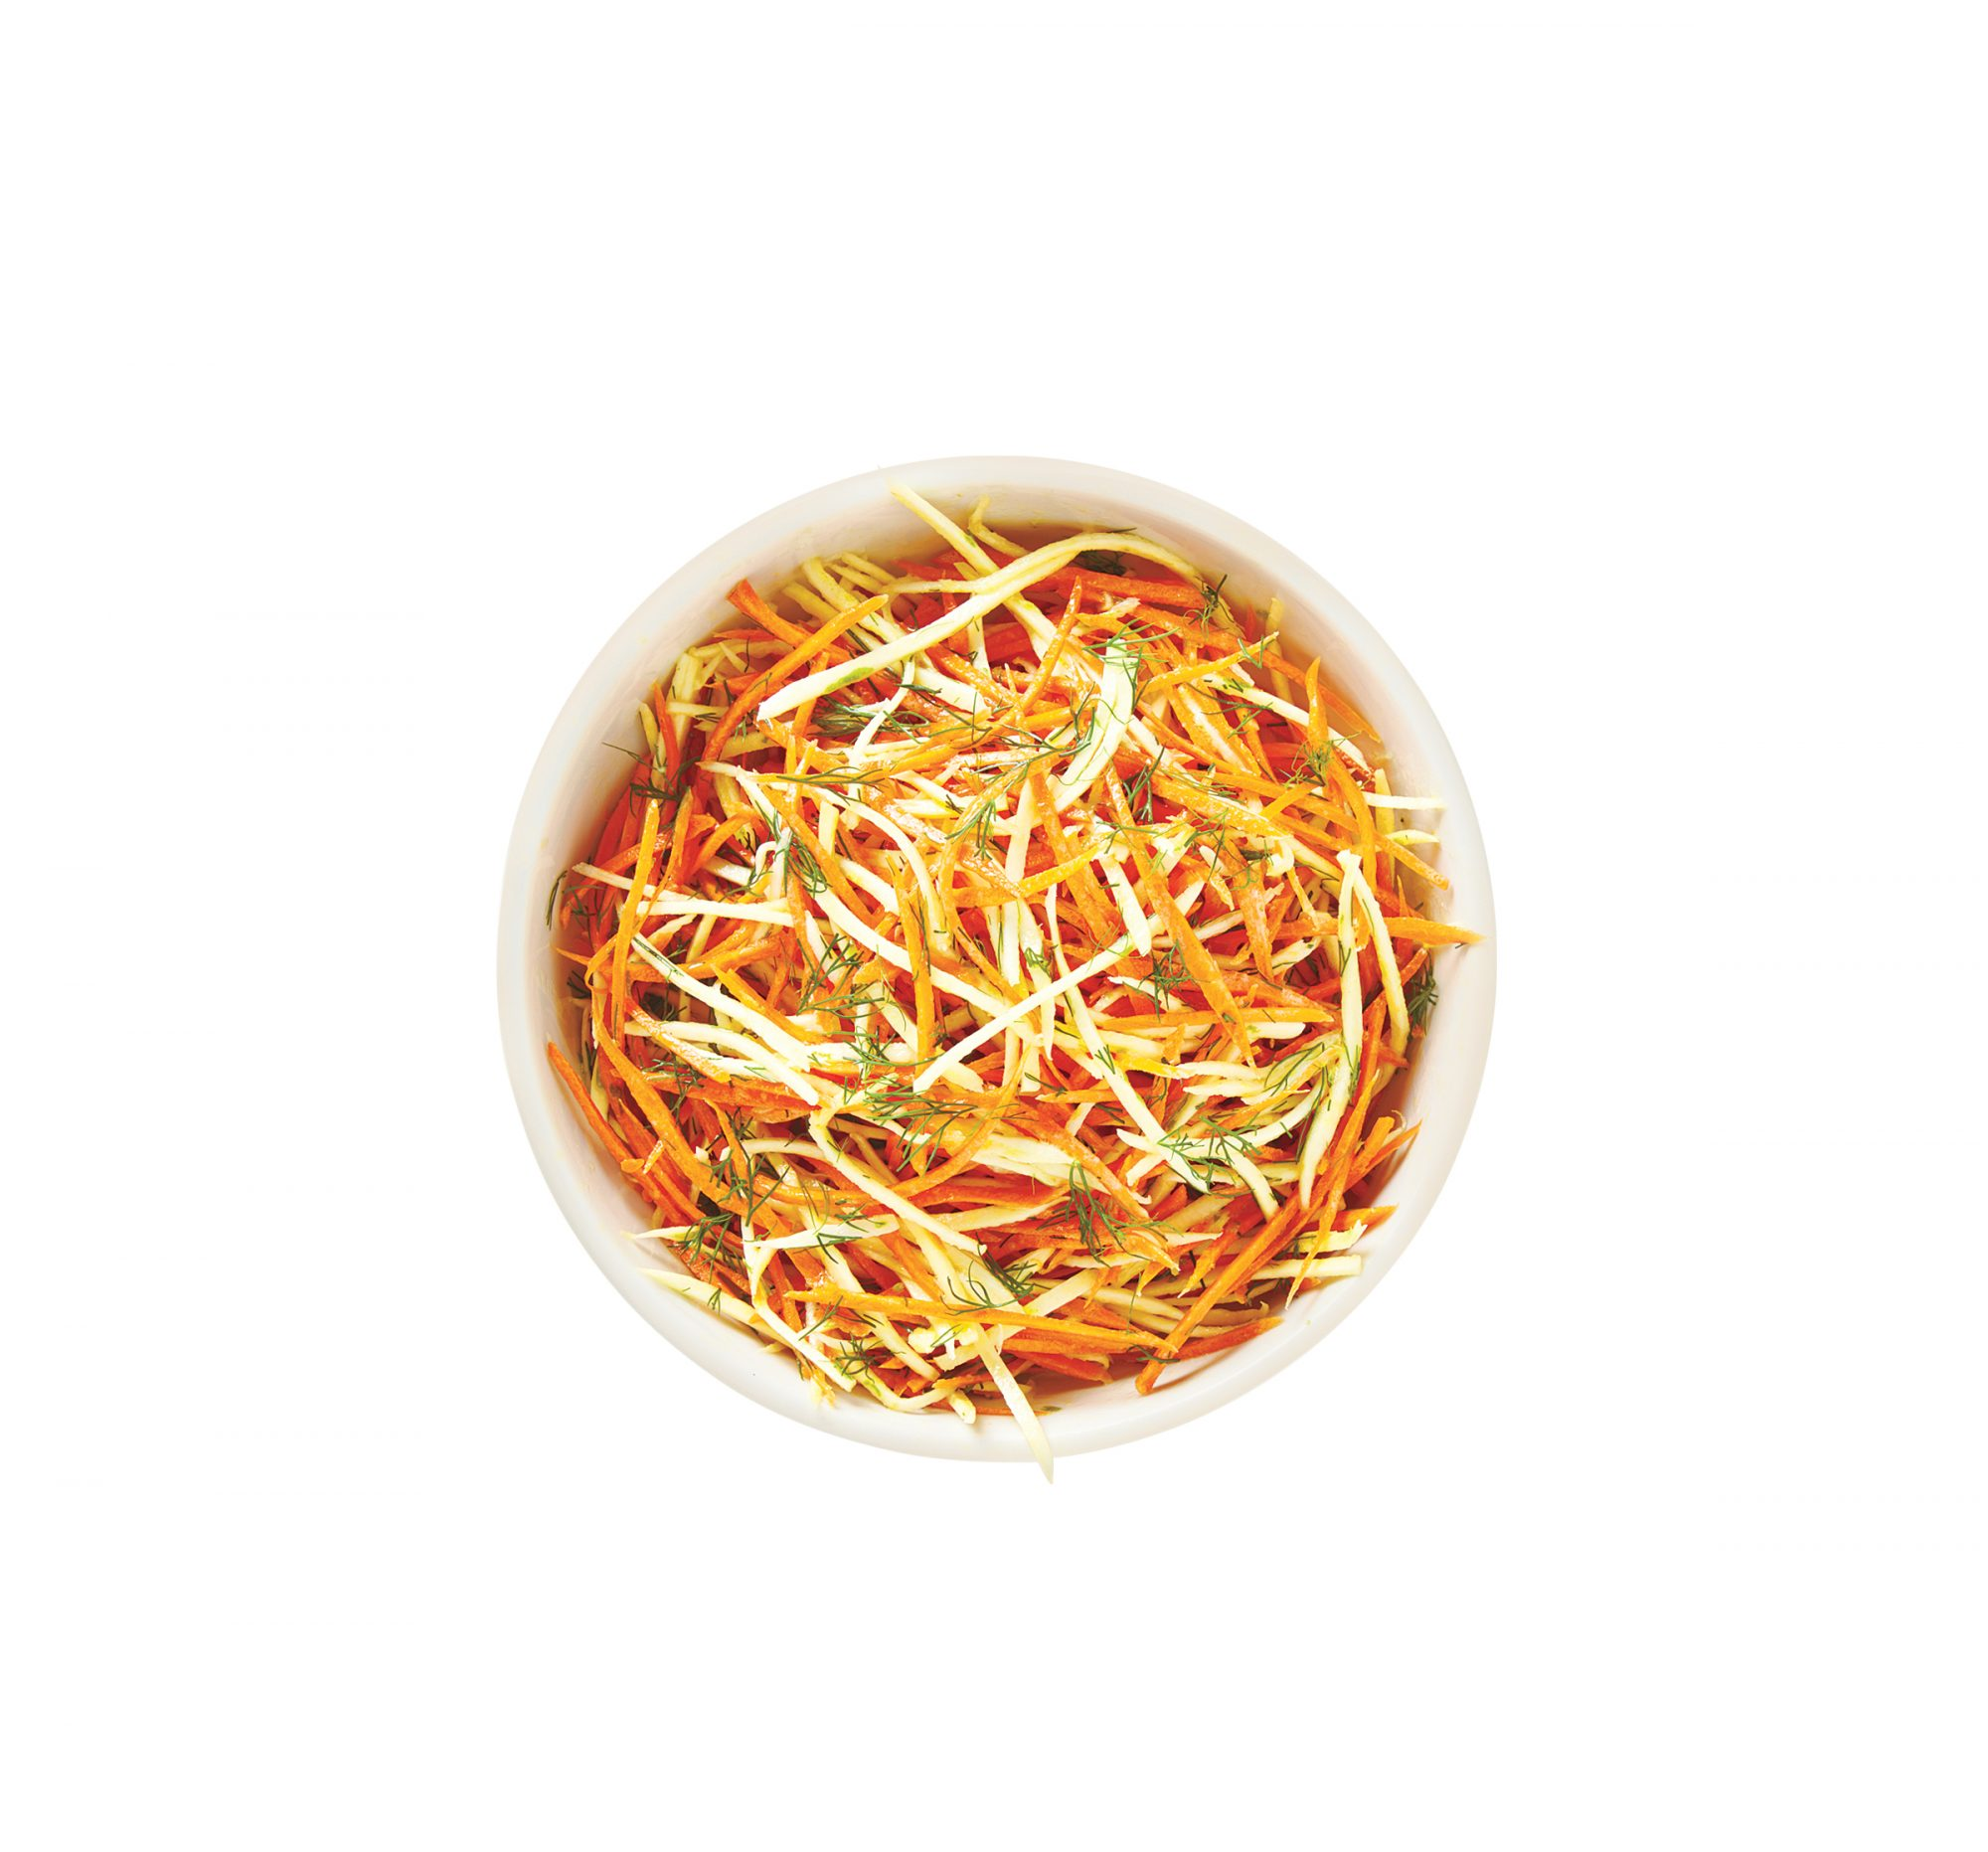 Carrot and Parsnip Slaw